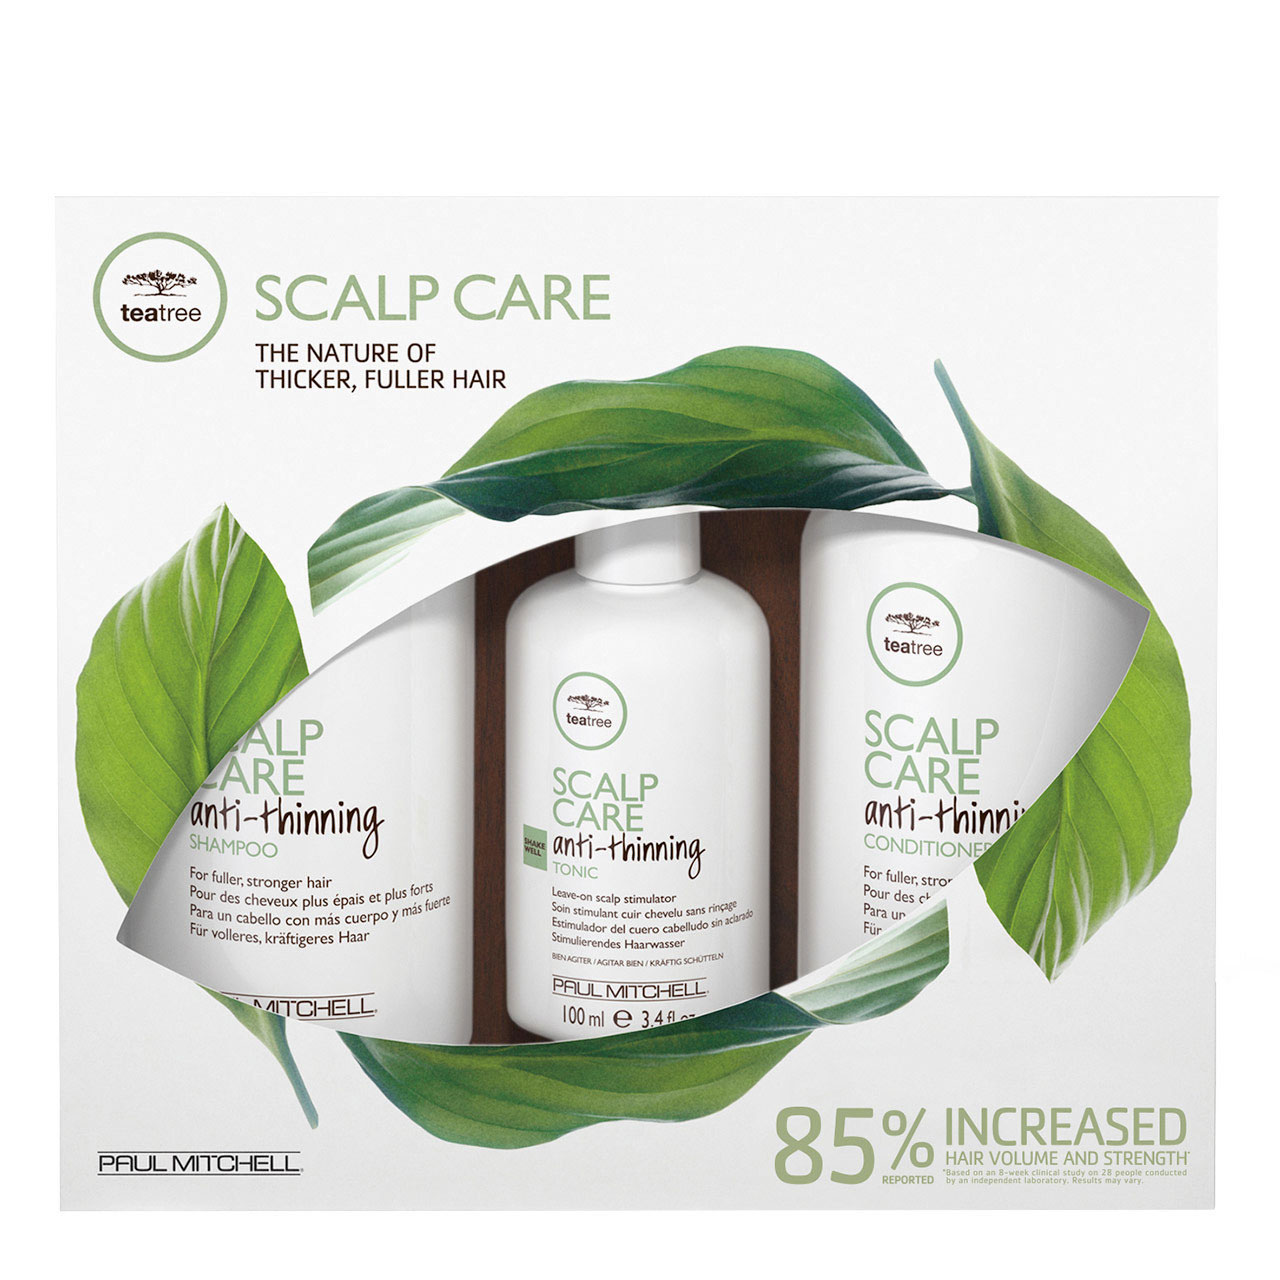 Paul Mitchell's Tea Tree Scalp Care Anti-Thinning Regimen Kit